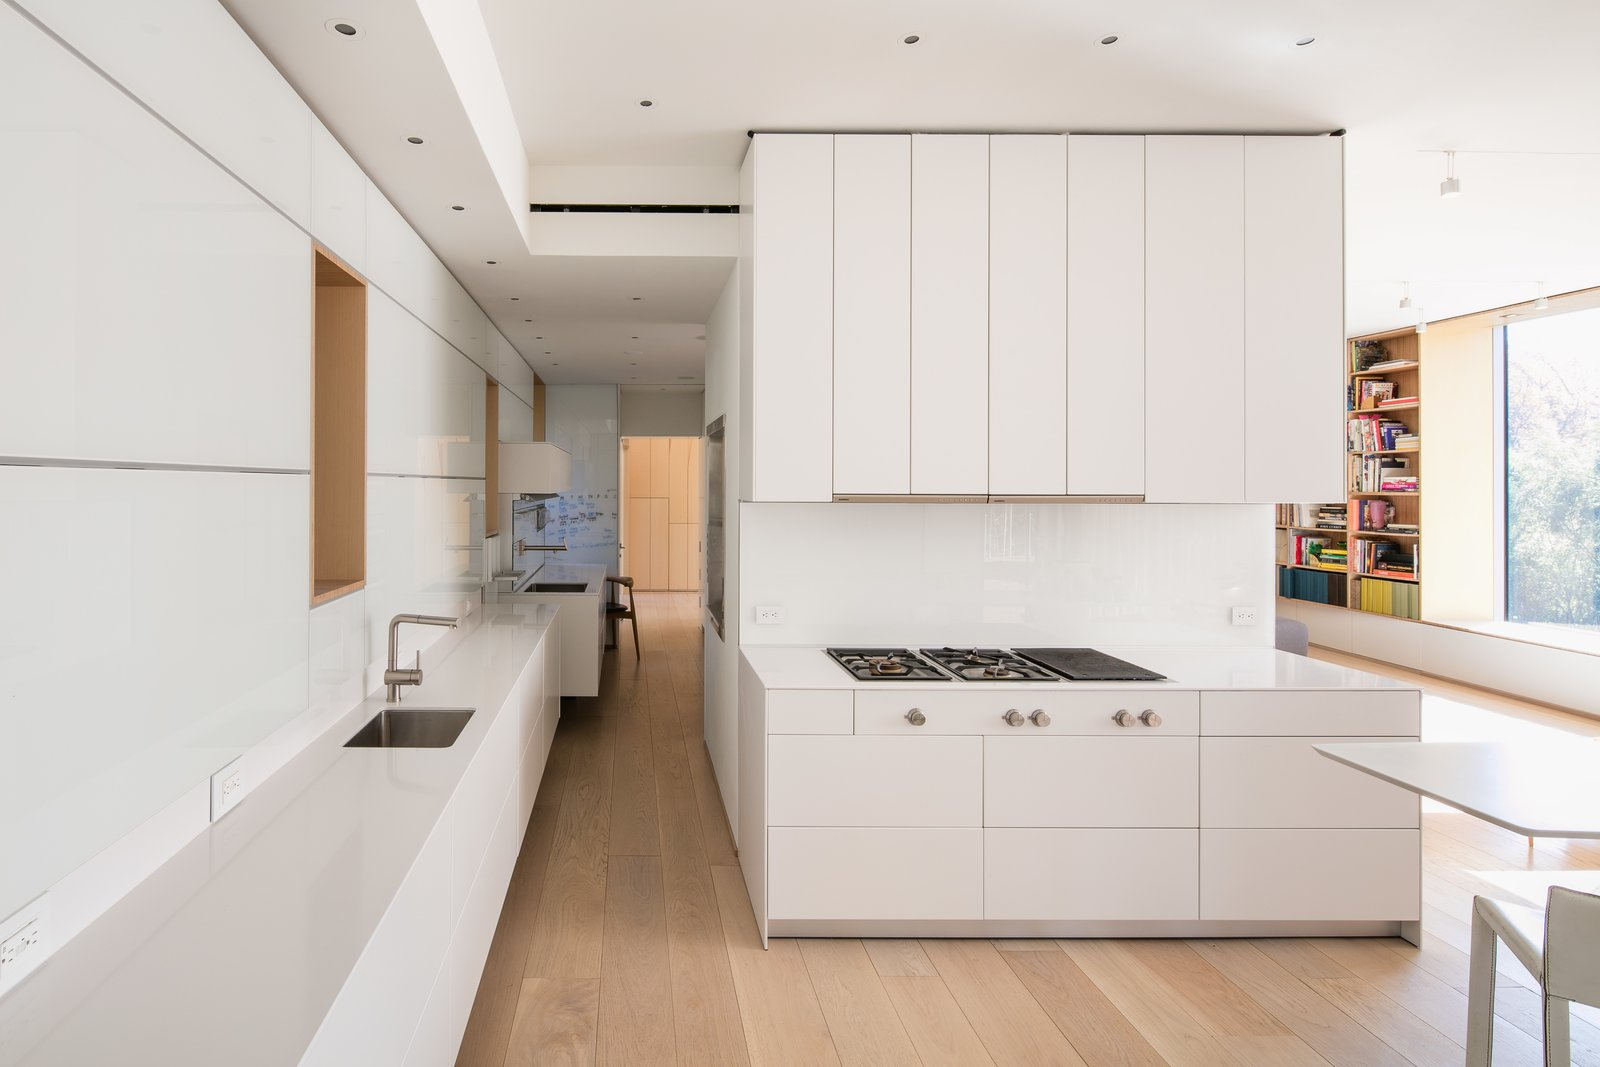 A cooktop and refrigerator from Gaggenau, Bulthaup cabinets, a Miele oven, and an Asko dishwasher outfit the all-white kitchen, which is located onthe entry-level floor.  Photo 5 of 15 in What's the Twist Behind This Home's Sinuous Staircase? Ordinary Plywood